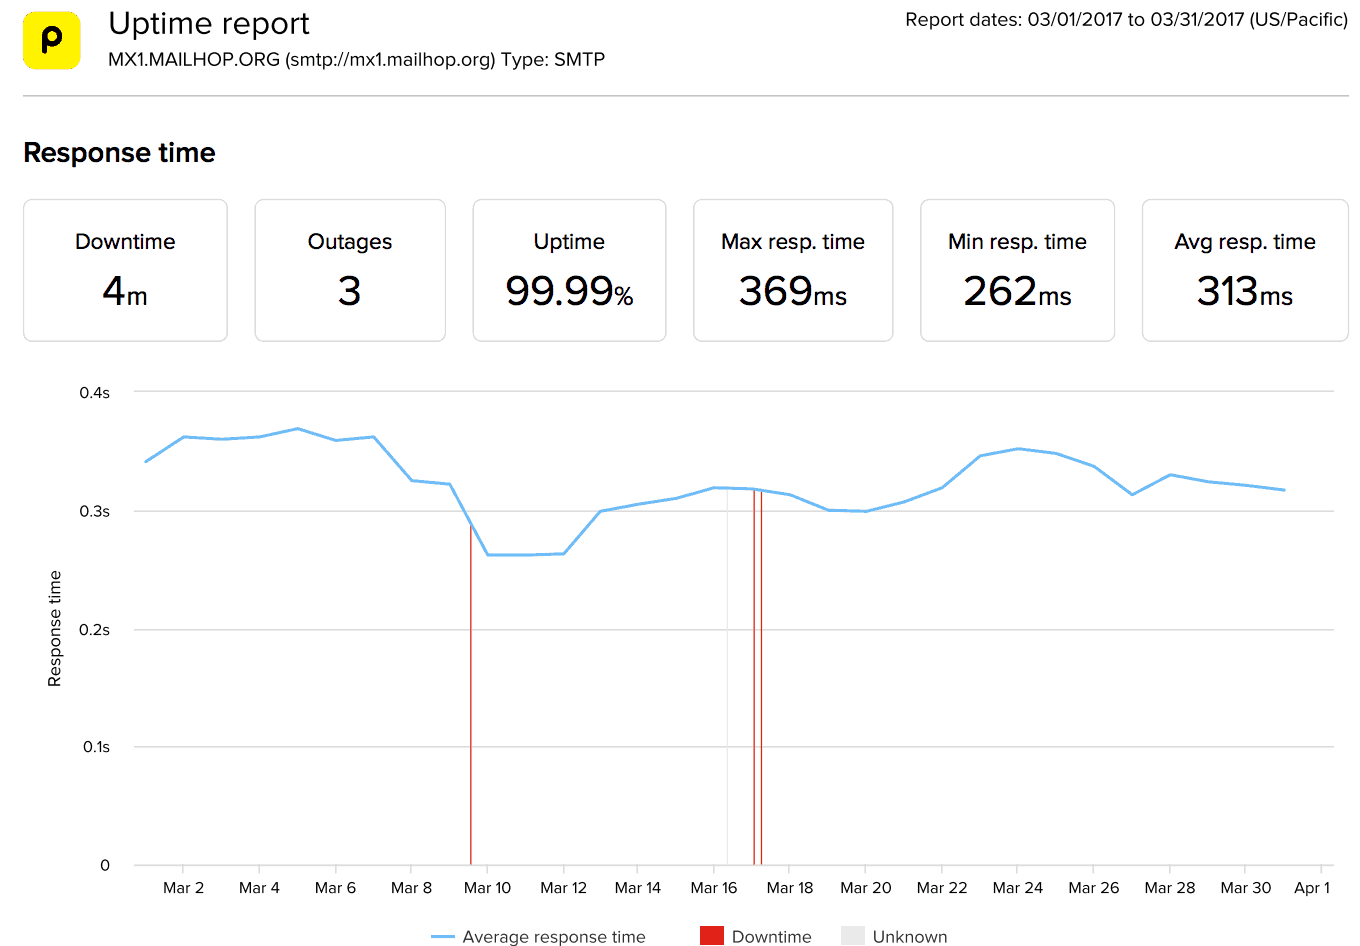 March 2017 Uptime Report